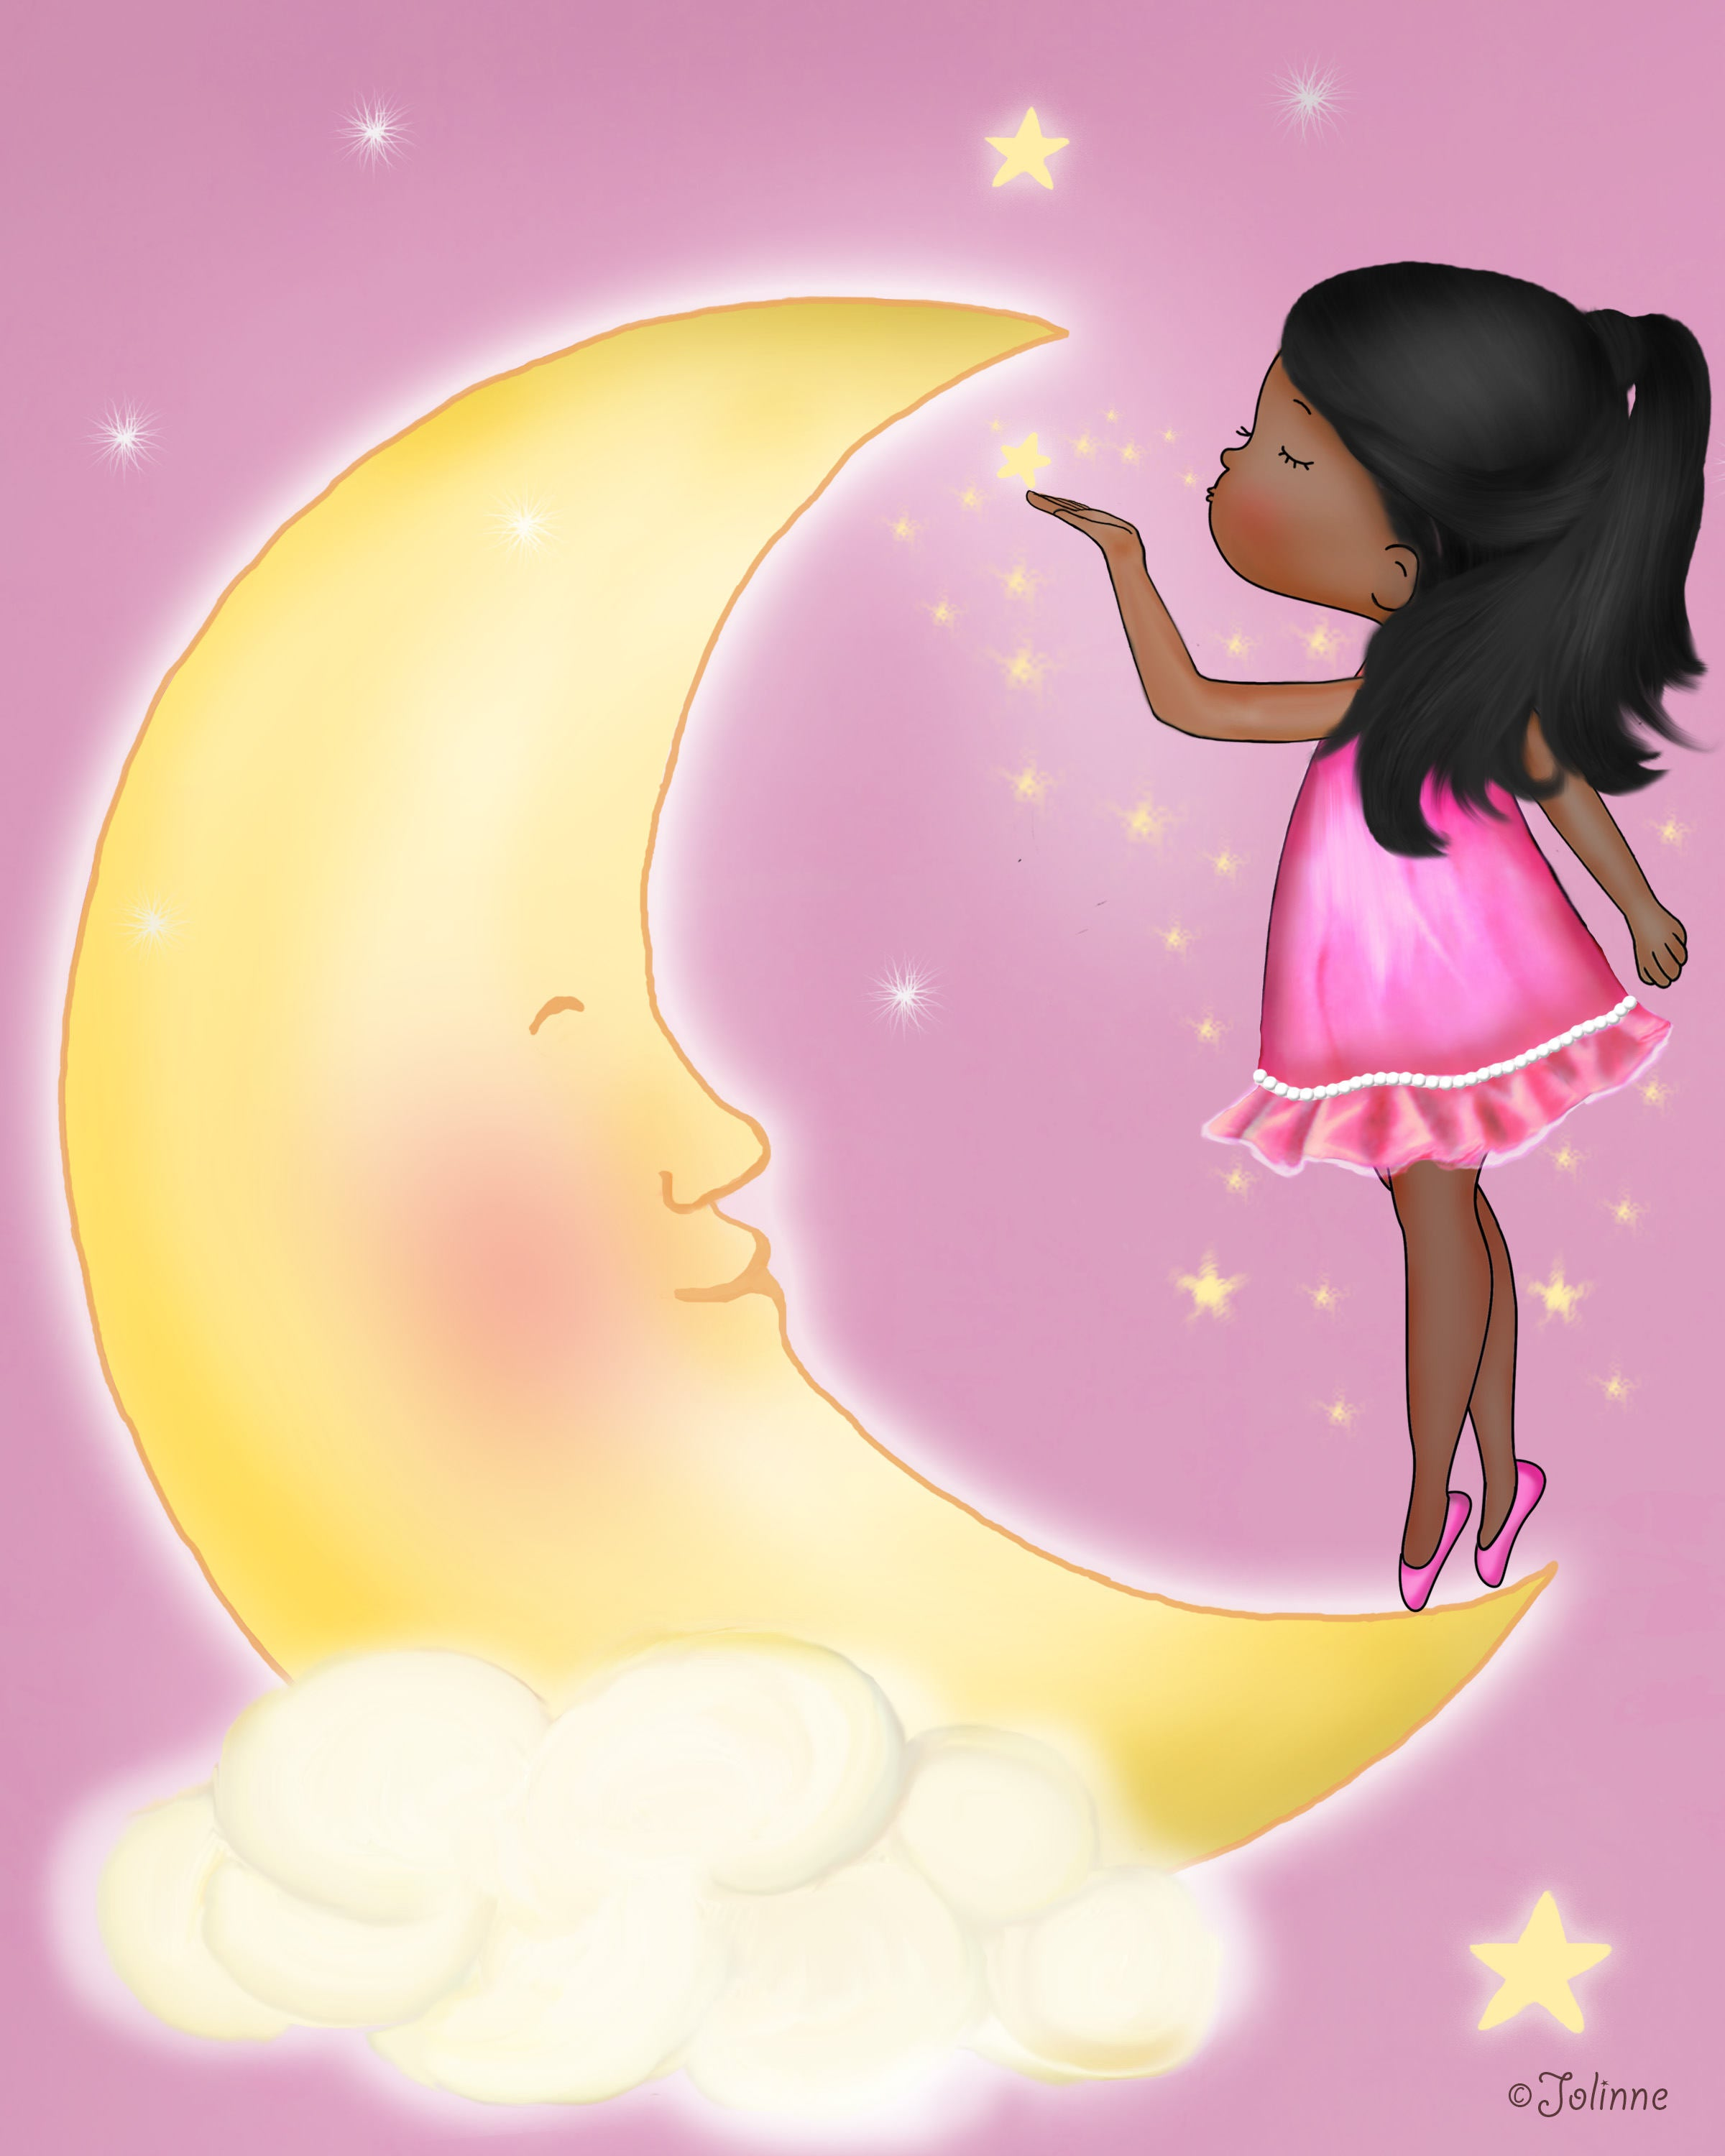 Baby Girl And Moon Nursery Art Prints | Jolinne